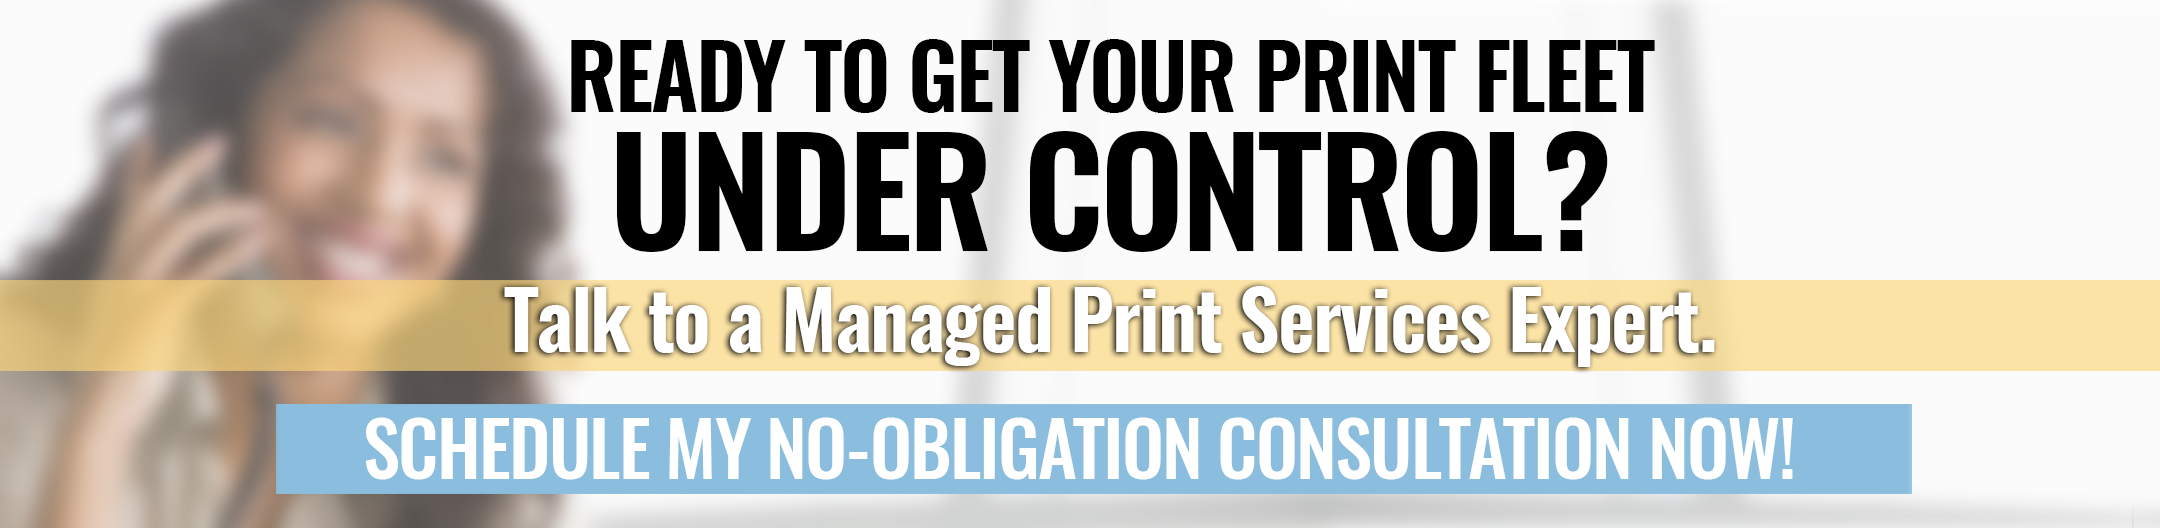 Ready to get your print fleet under control? Click here to schedule a free, no obligation consultation with a Managed Print Services expert now!